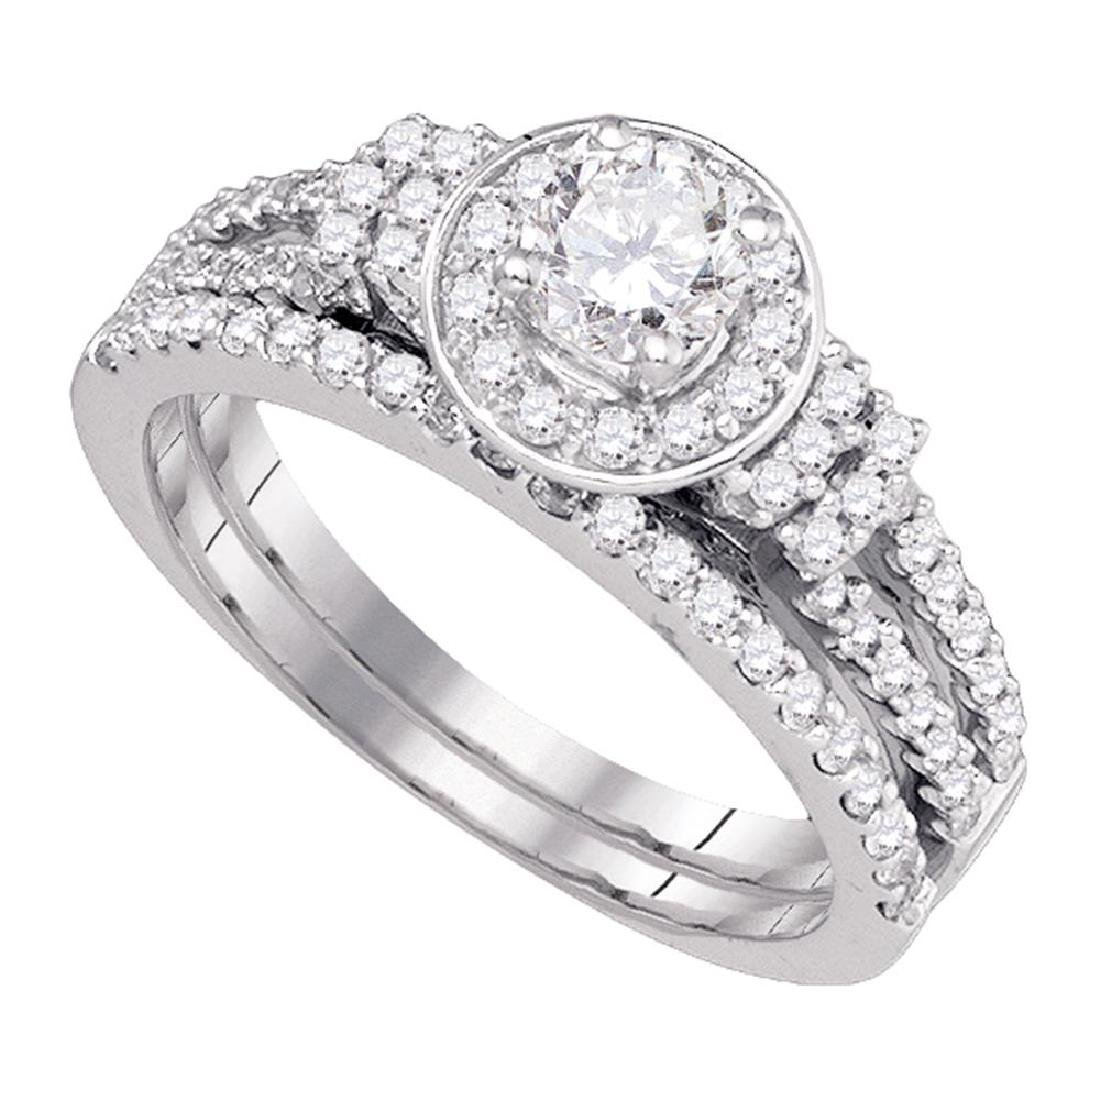 1 CTW Diamond Halo Bridal Engagement Ring 14KT White